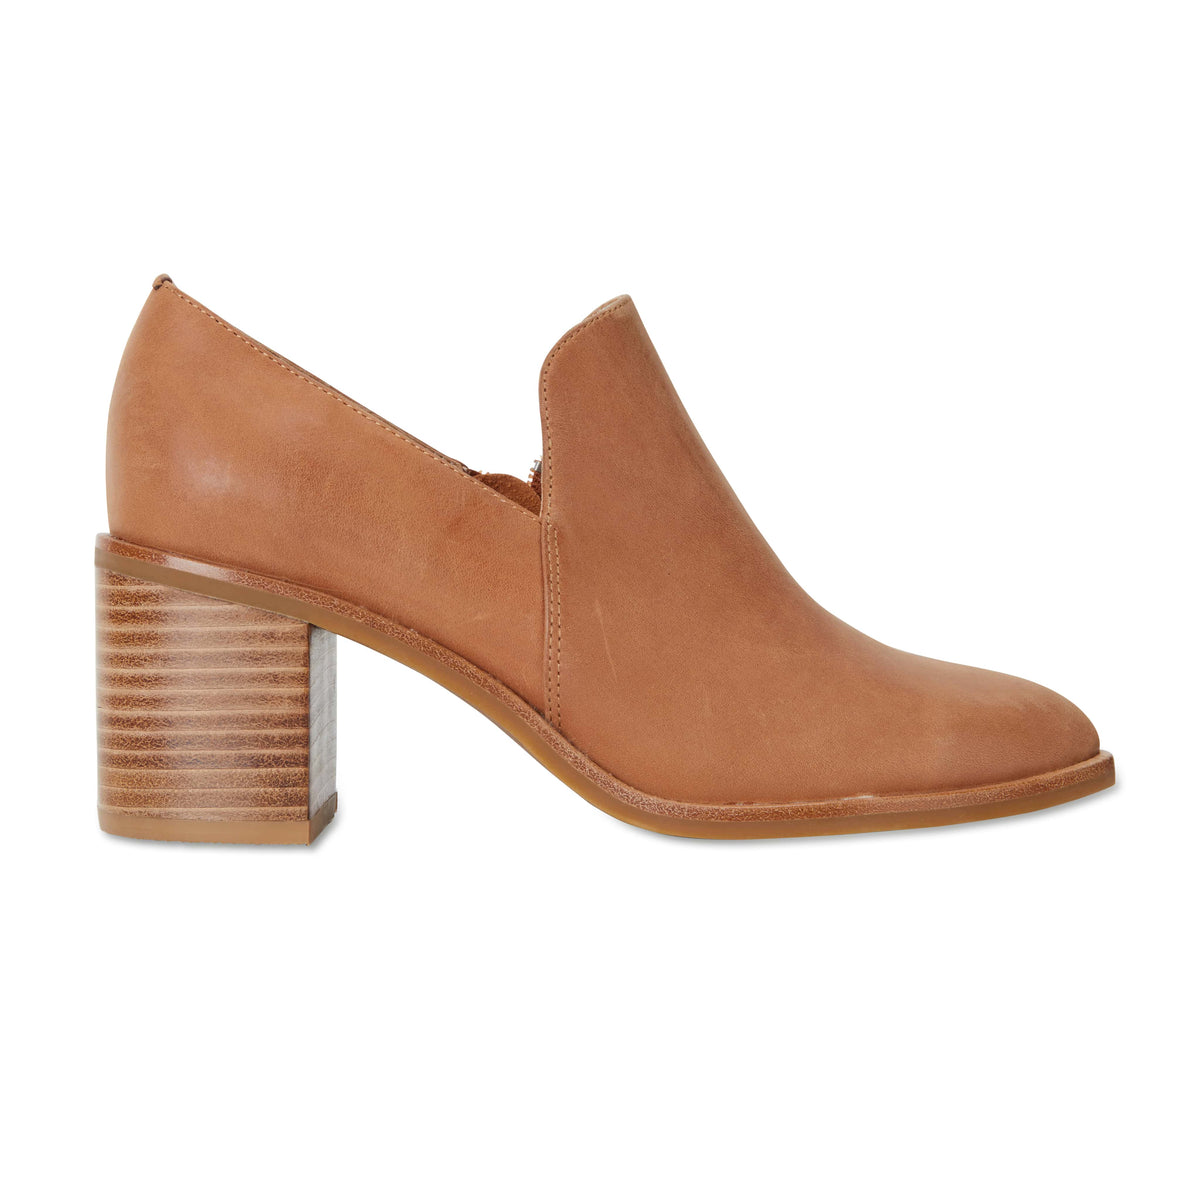 Decade Heel in Tan Leather